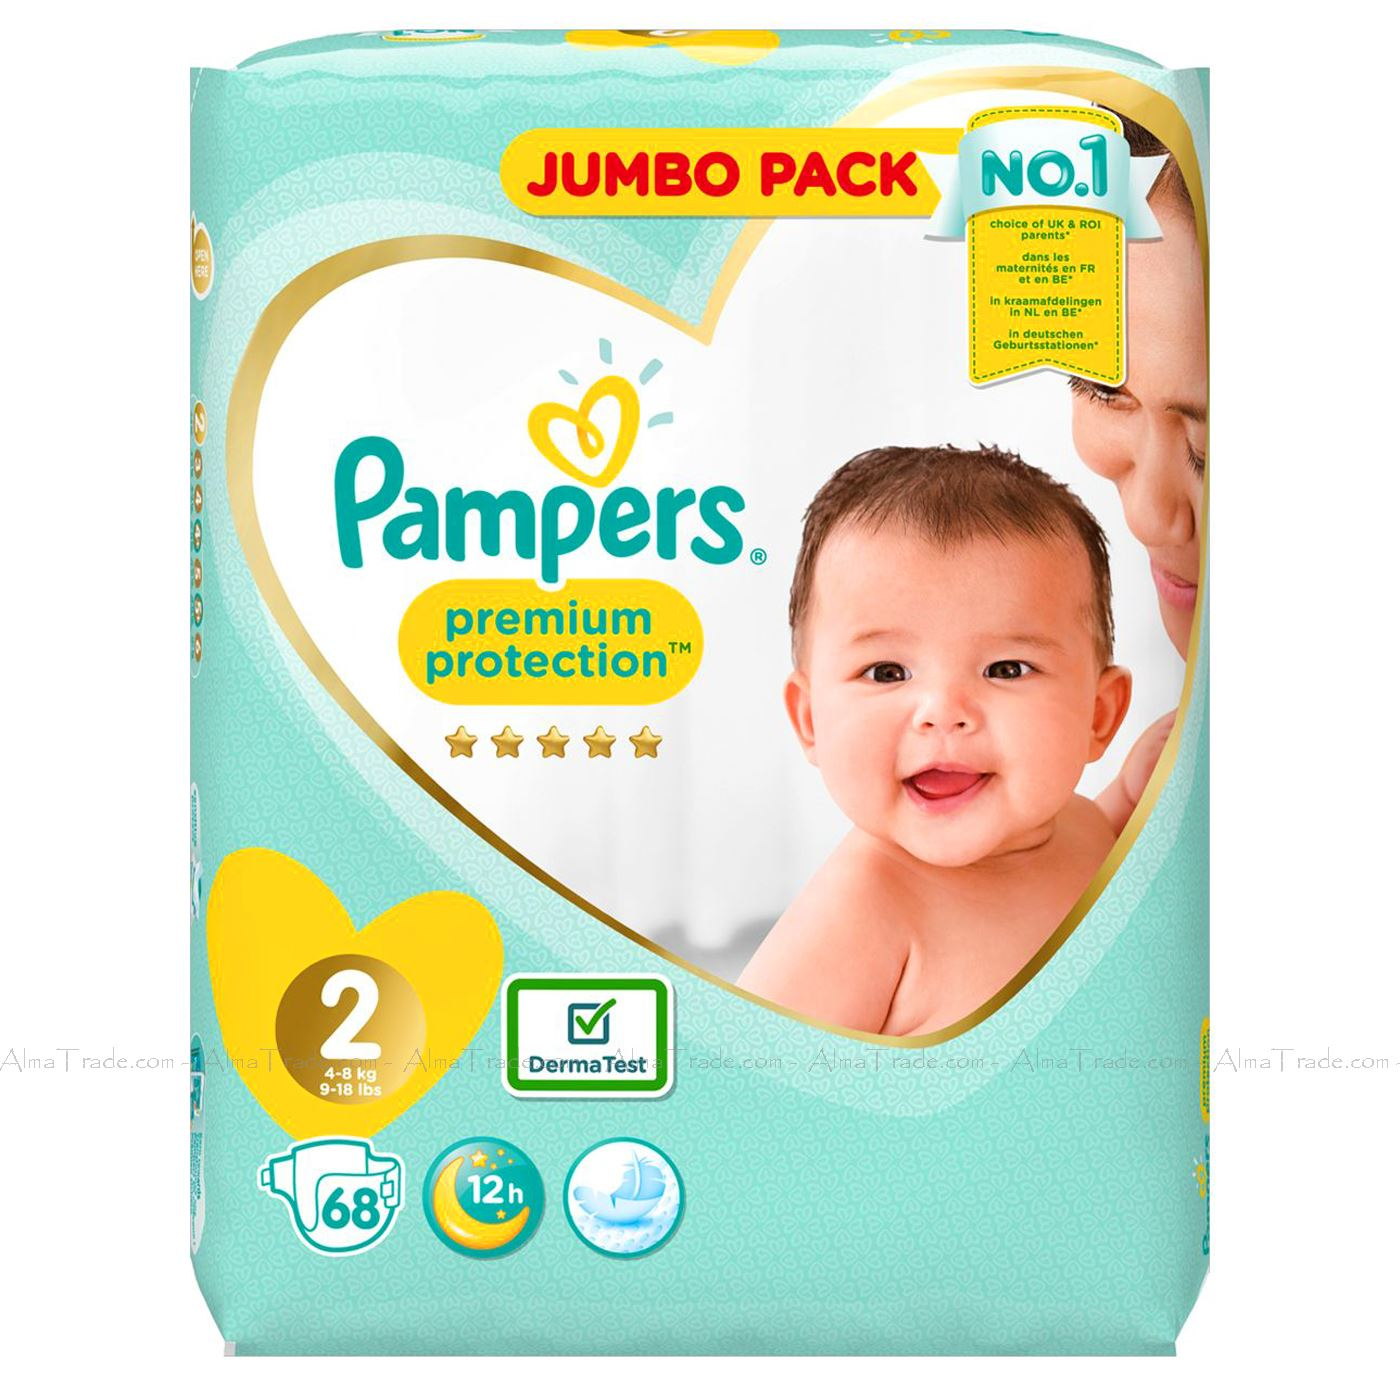 Pampers-Baby-Dry-Nappy-Air-Channels-Nappies-Size-1-2-3-4-5-6-7-Jumbo-Giga-Pack thumbnail 9